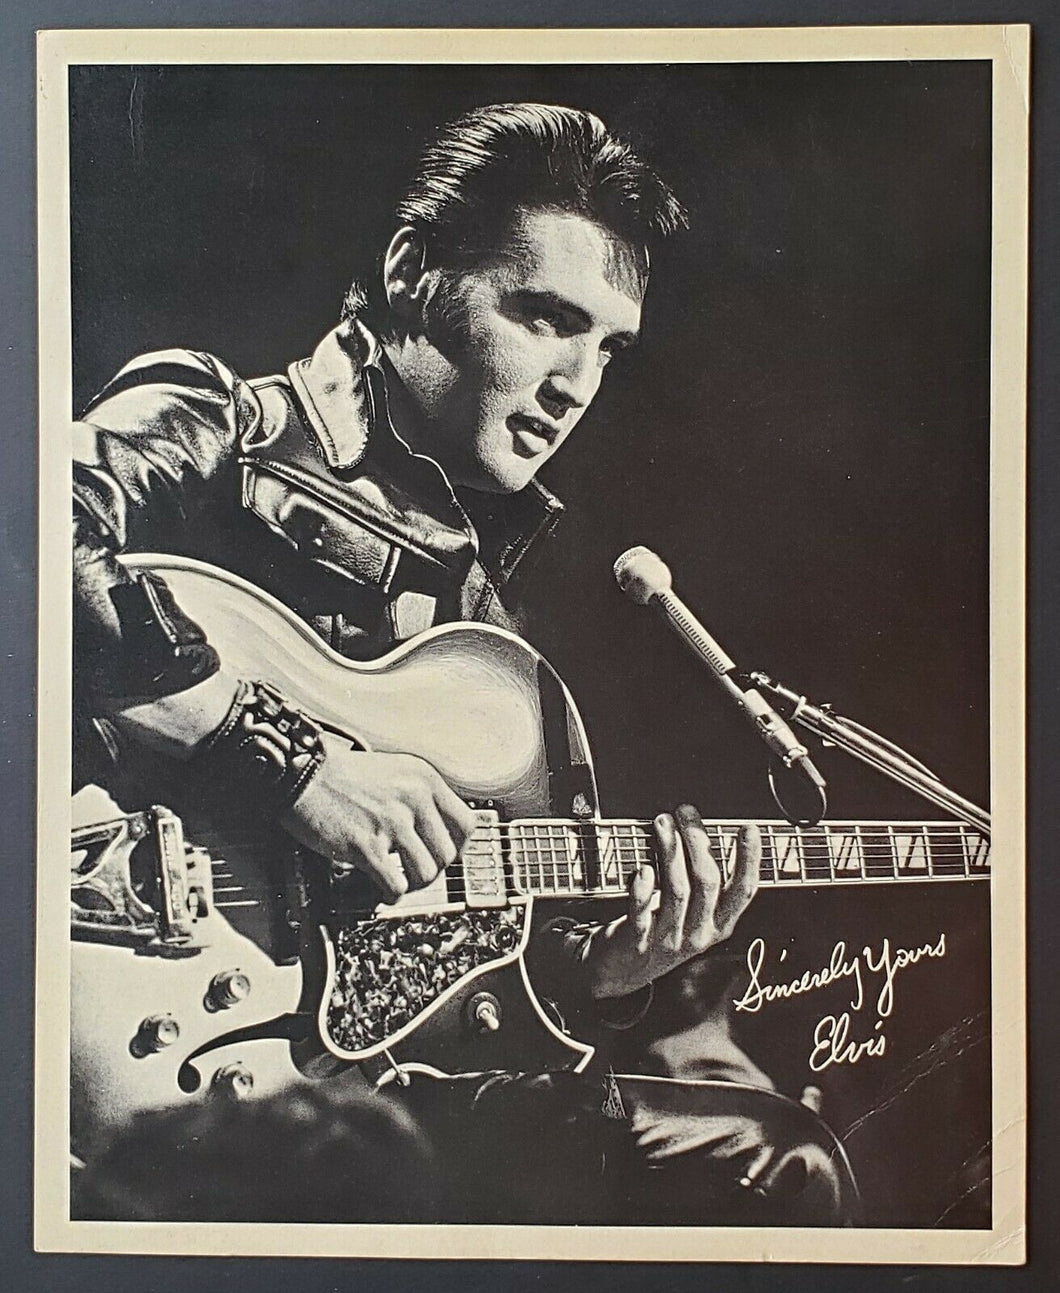 1969 Elvis Presley Vintage Promo Photo Card For Record Stores - King Of Rock